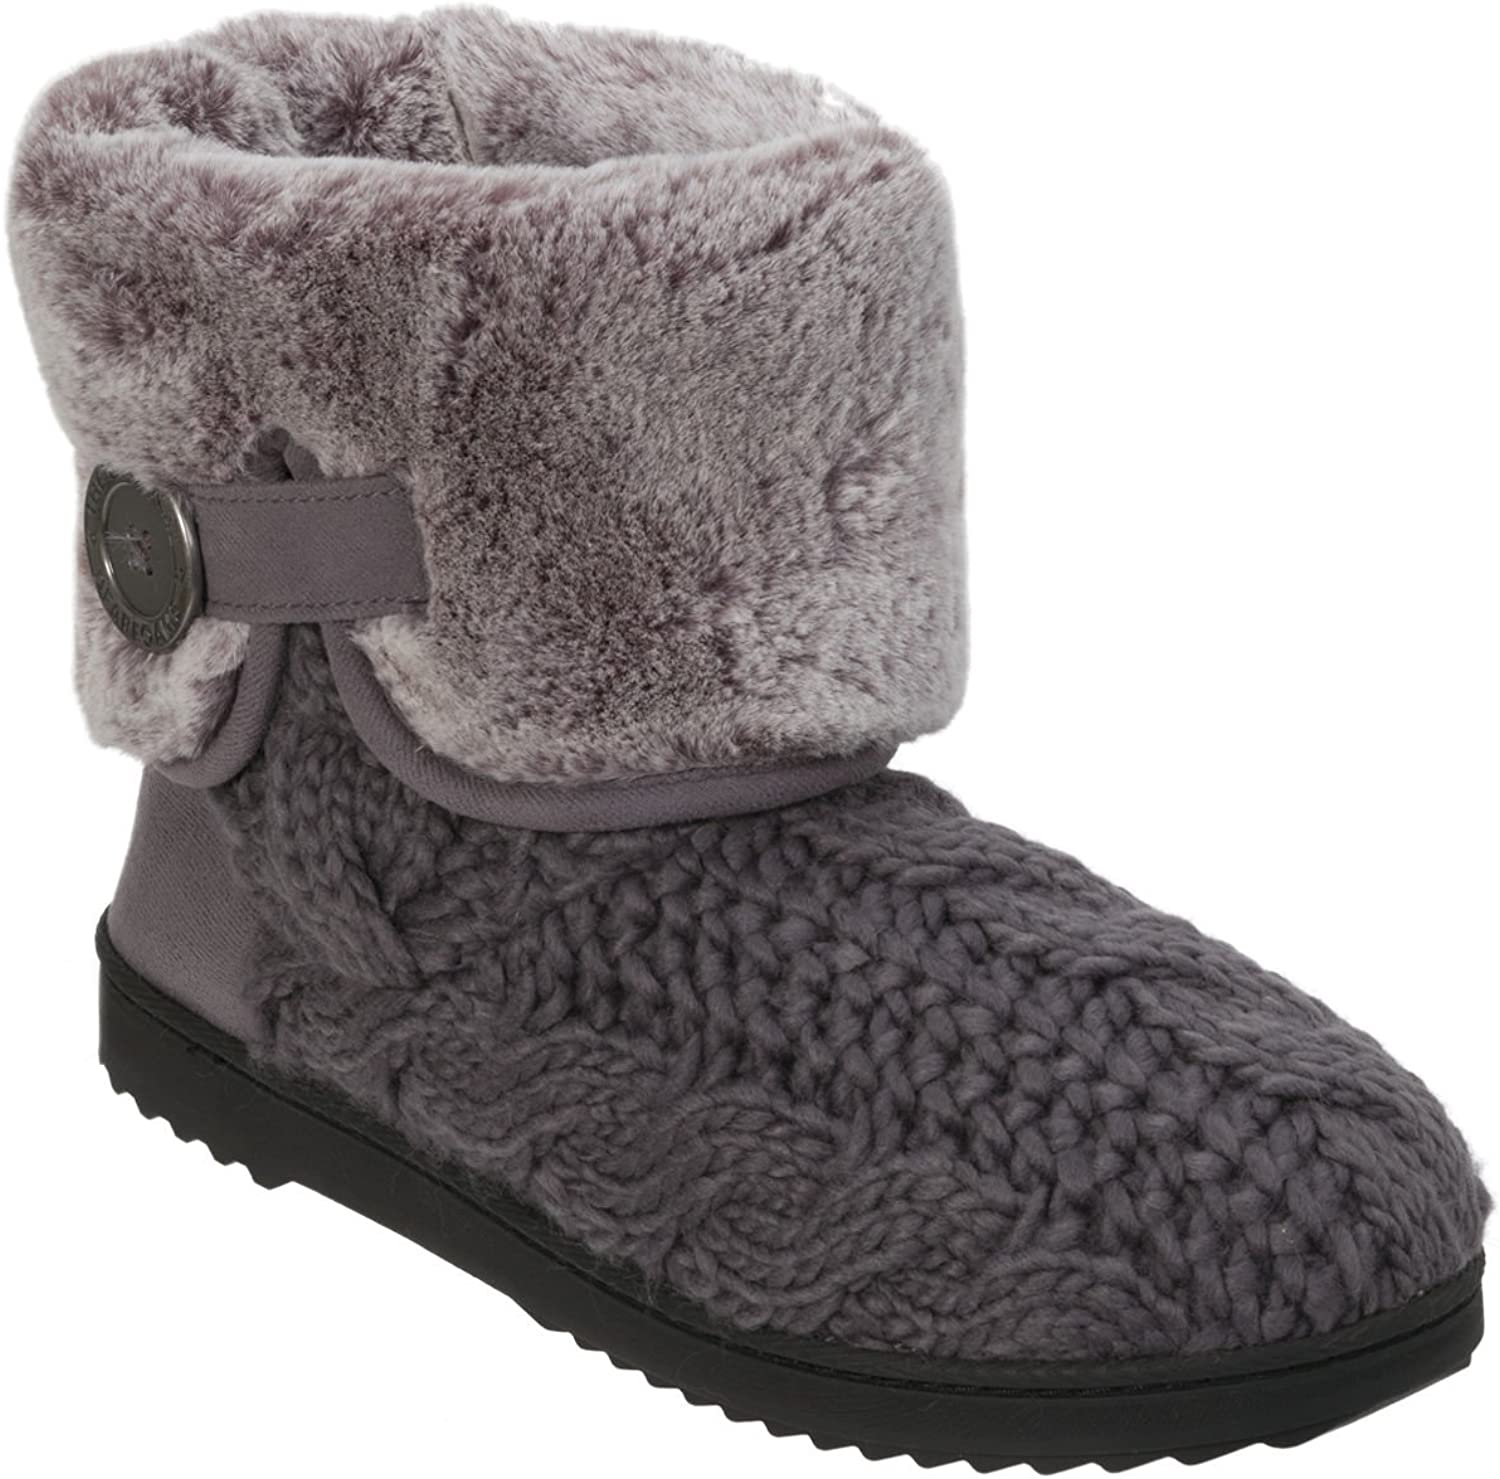 Dearbems Cable Cable Cable Knit Boot w  Plush Cuff  erbjuder 100%